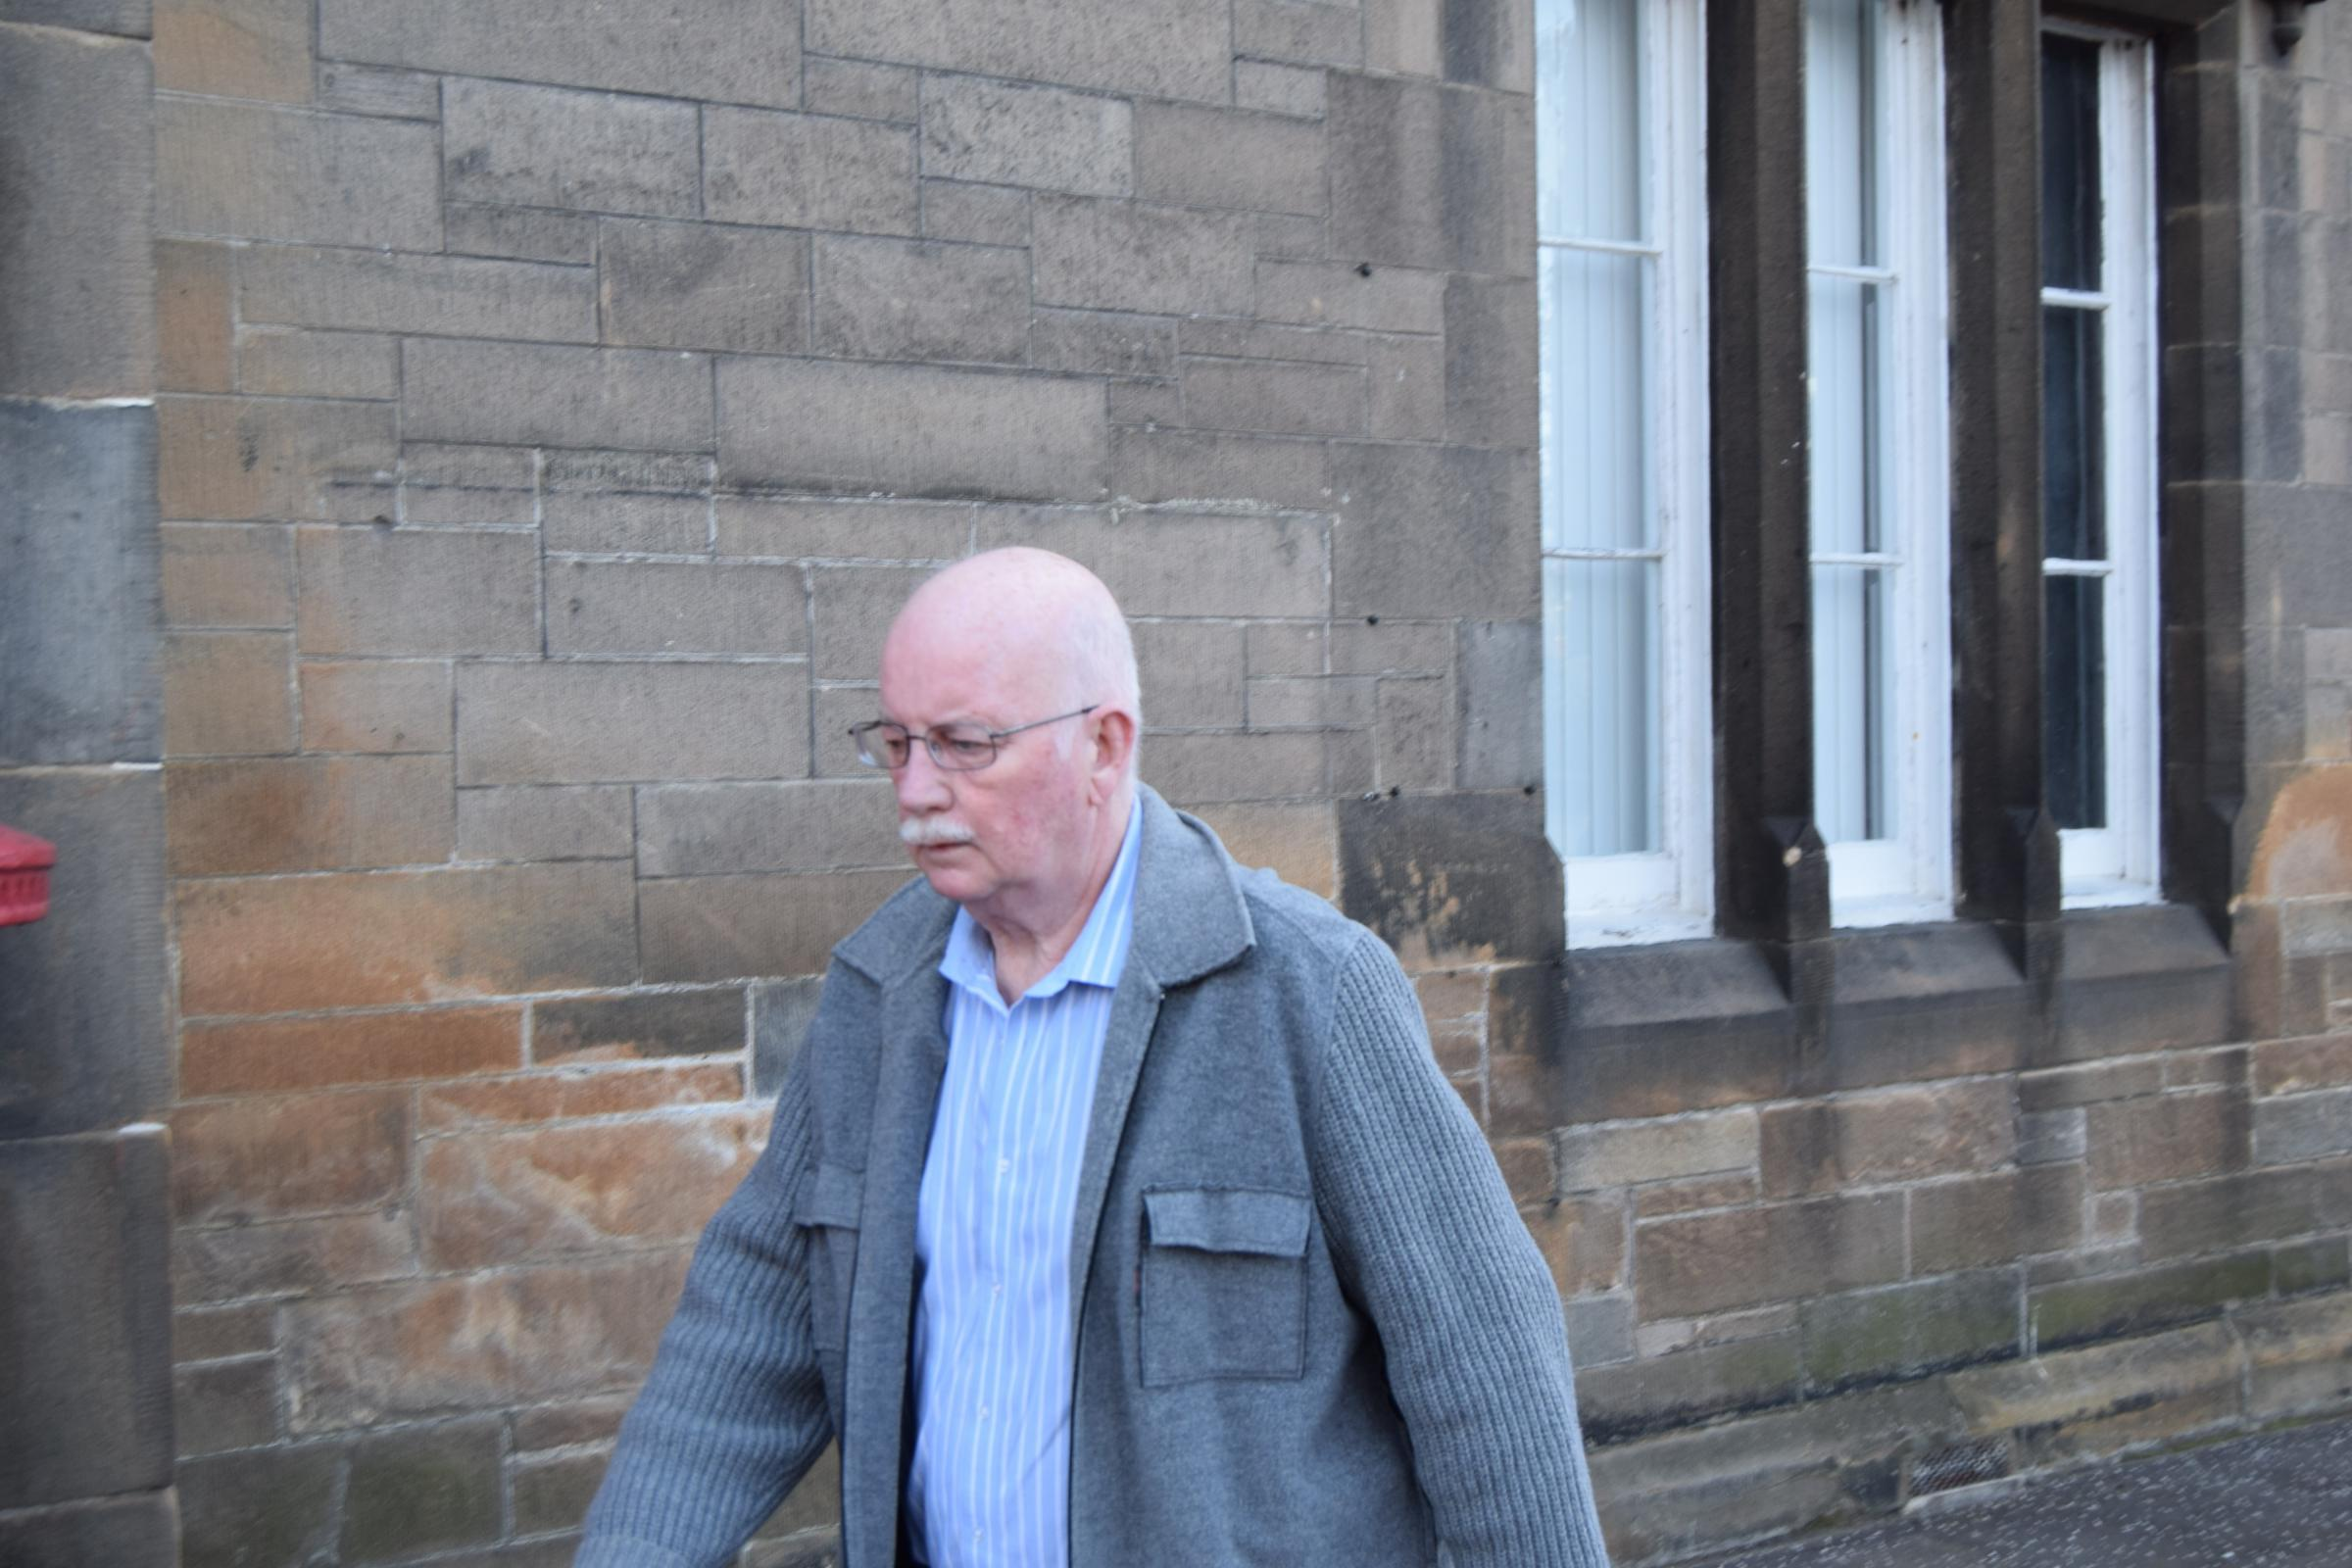 Alistair MacCorquodale appeared in Alloa Sheriff Court